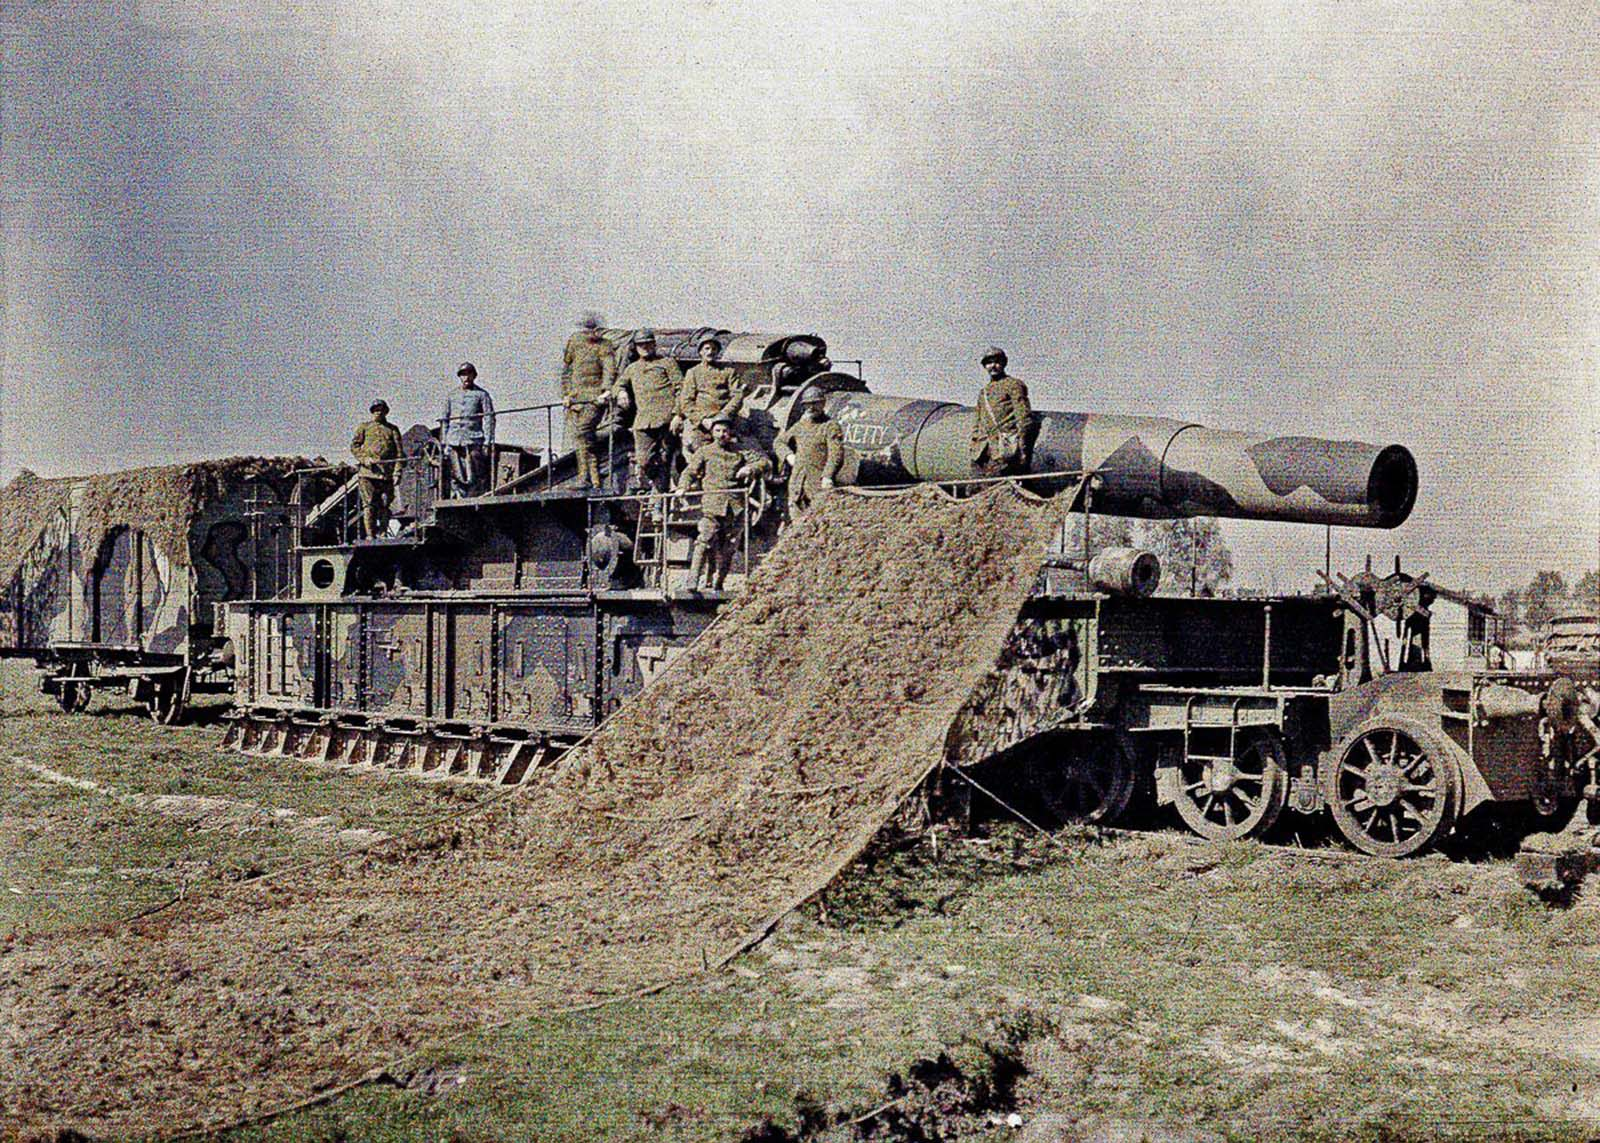 French soldiers camouflage a 370-millimeter railway gun on the western front in World War I. 1917.